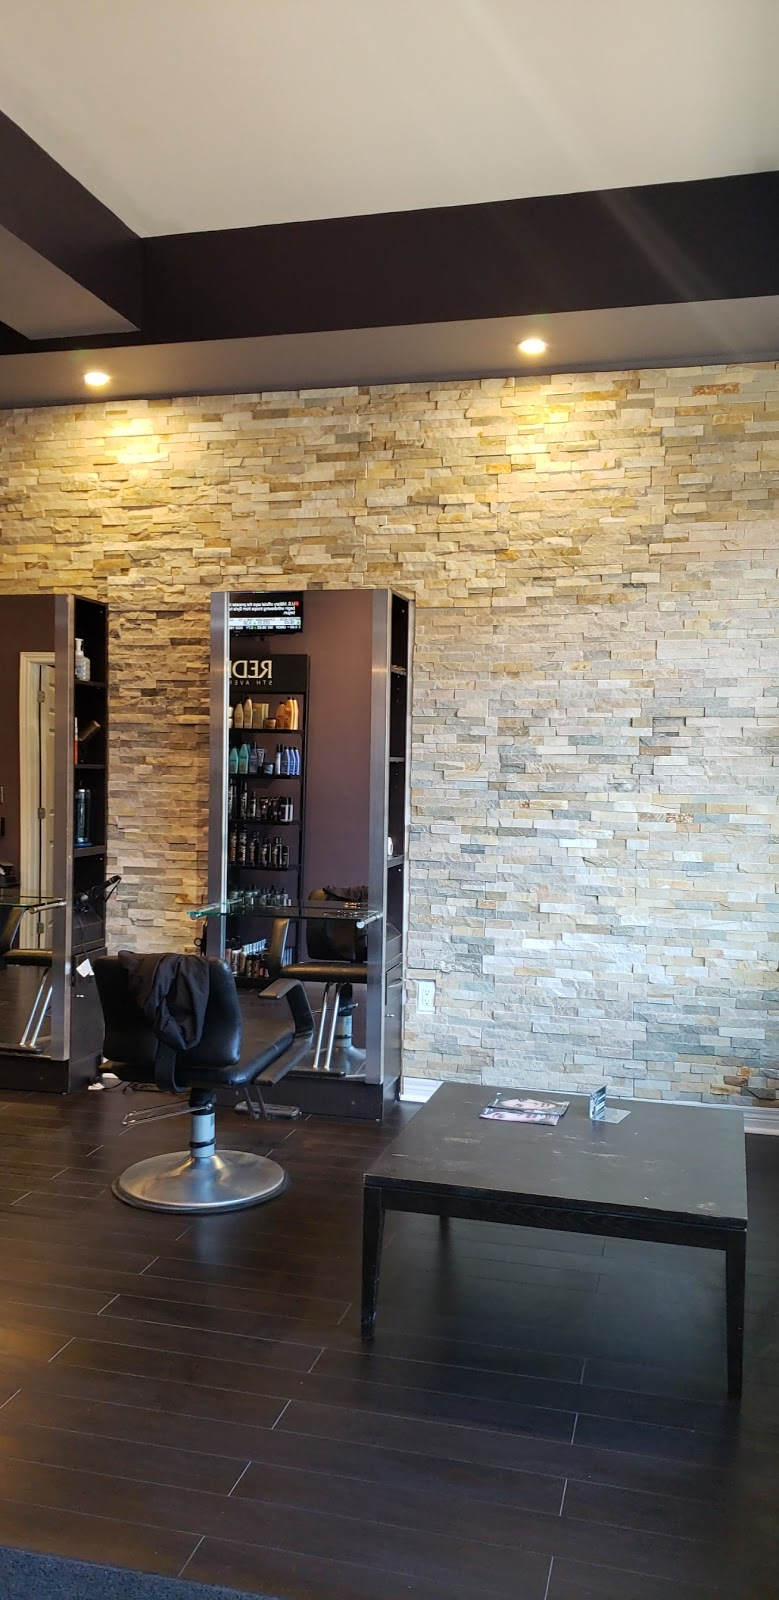 Salon Shine | point of interest | 144 Inspire Blvd unit 20, Brampton, ON L6R 0B3, Canada | 9054541500 OR +1 905-454-1500